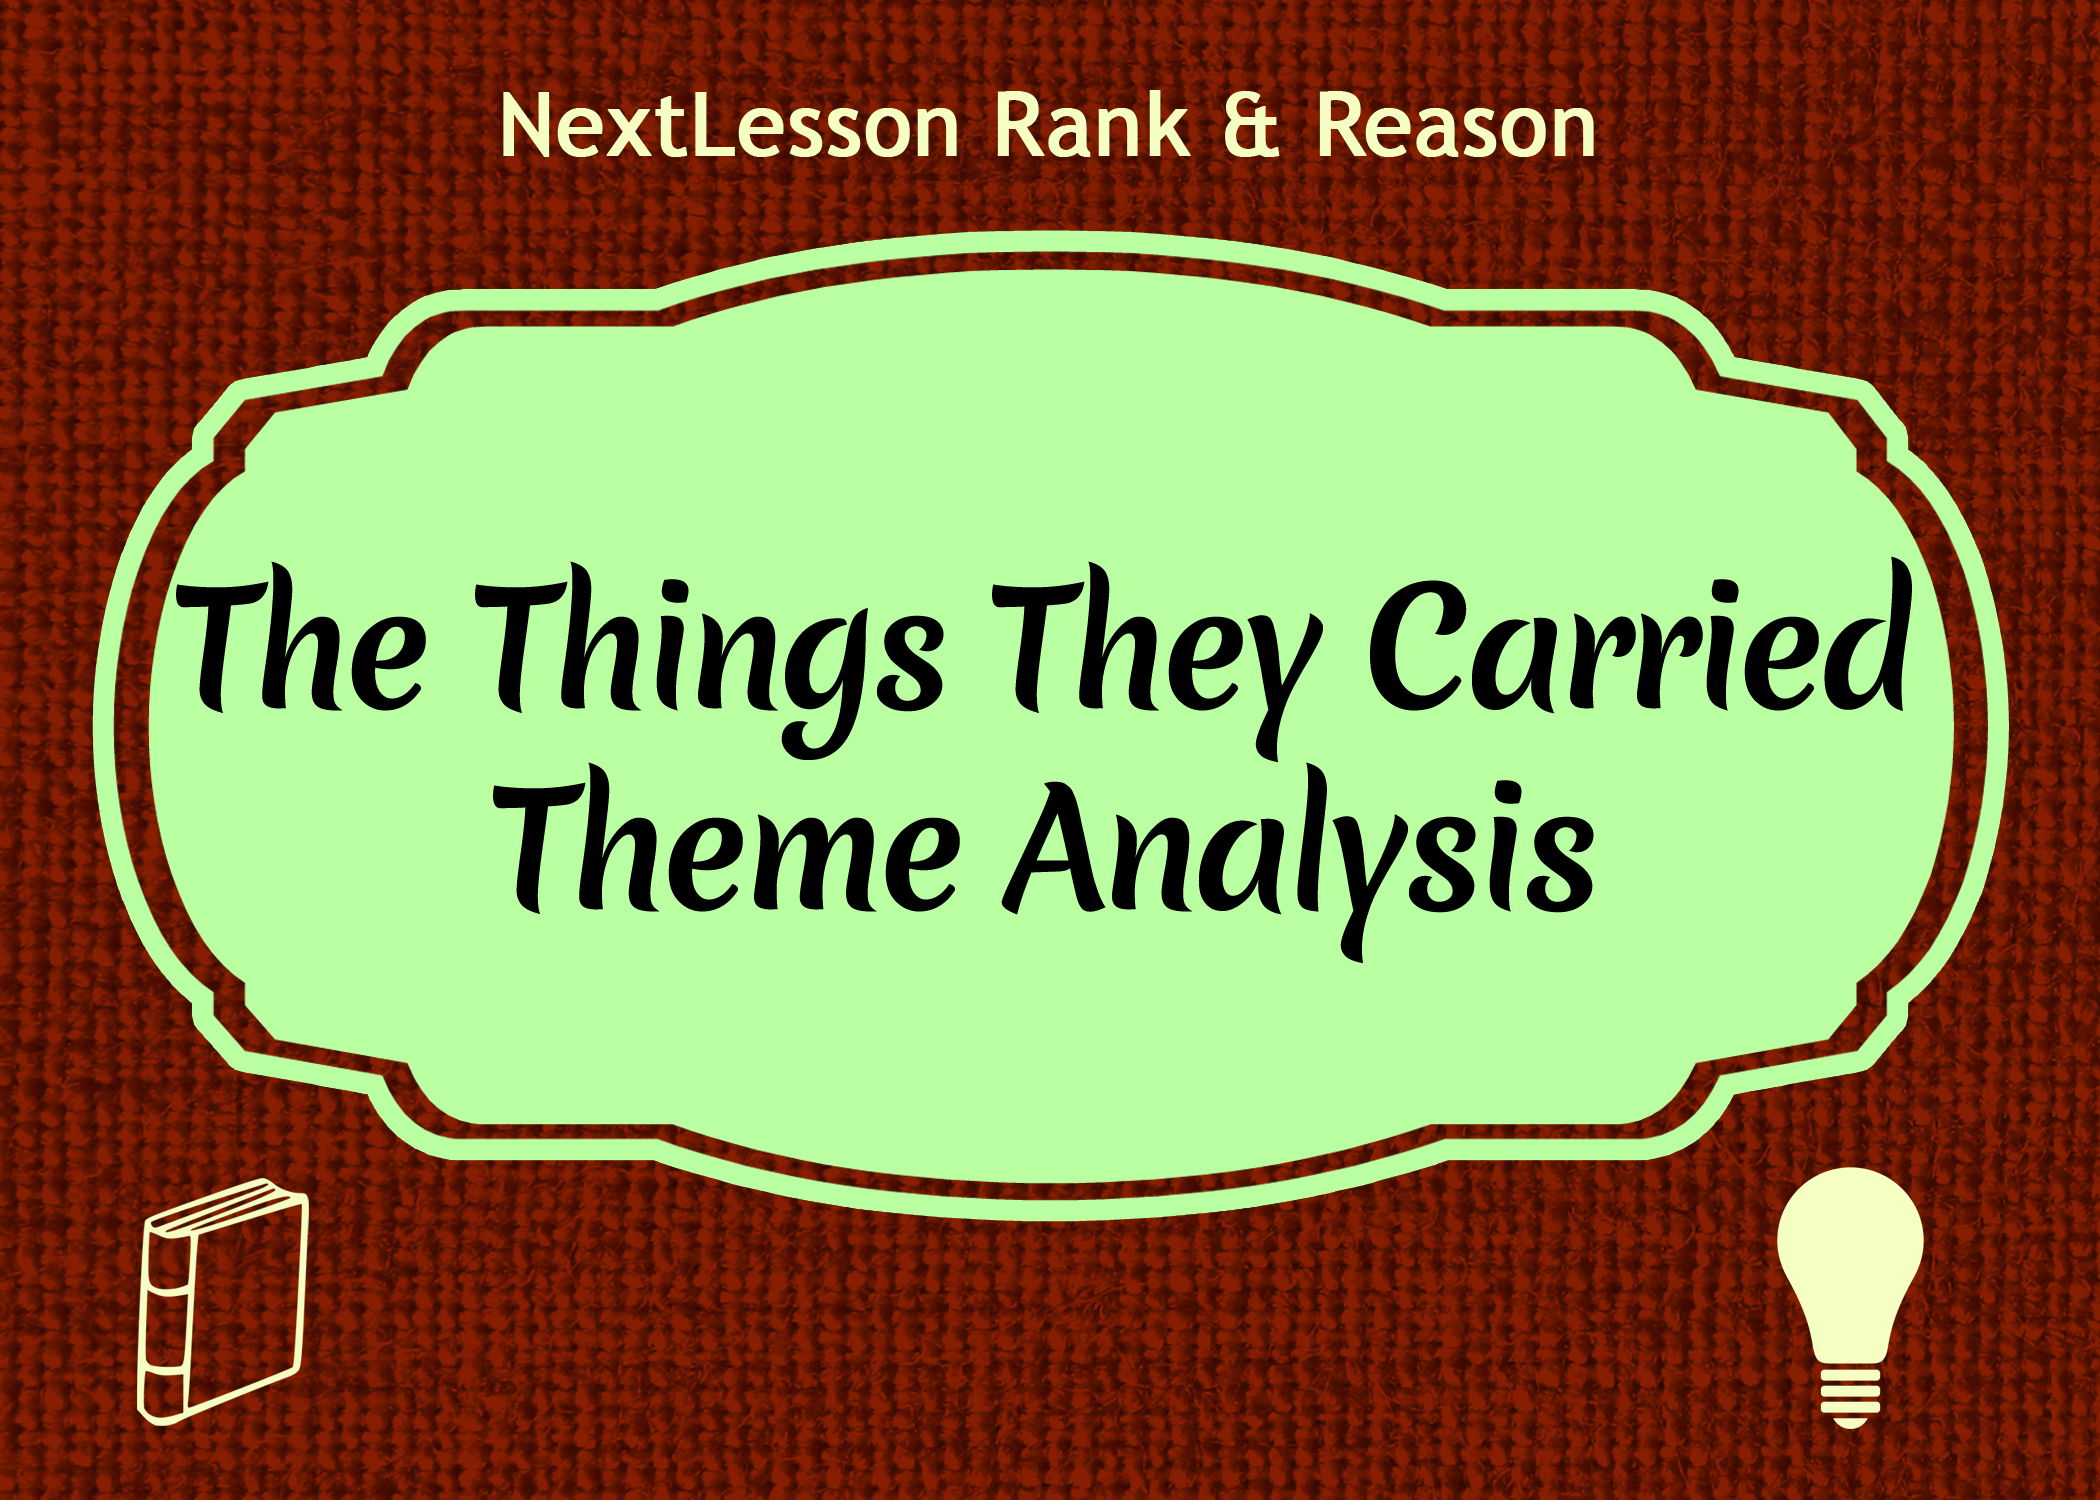 The things they carried theme analysis essay